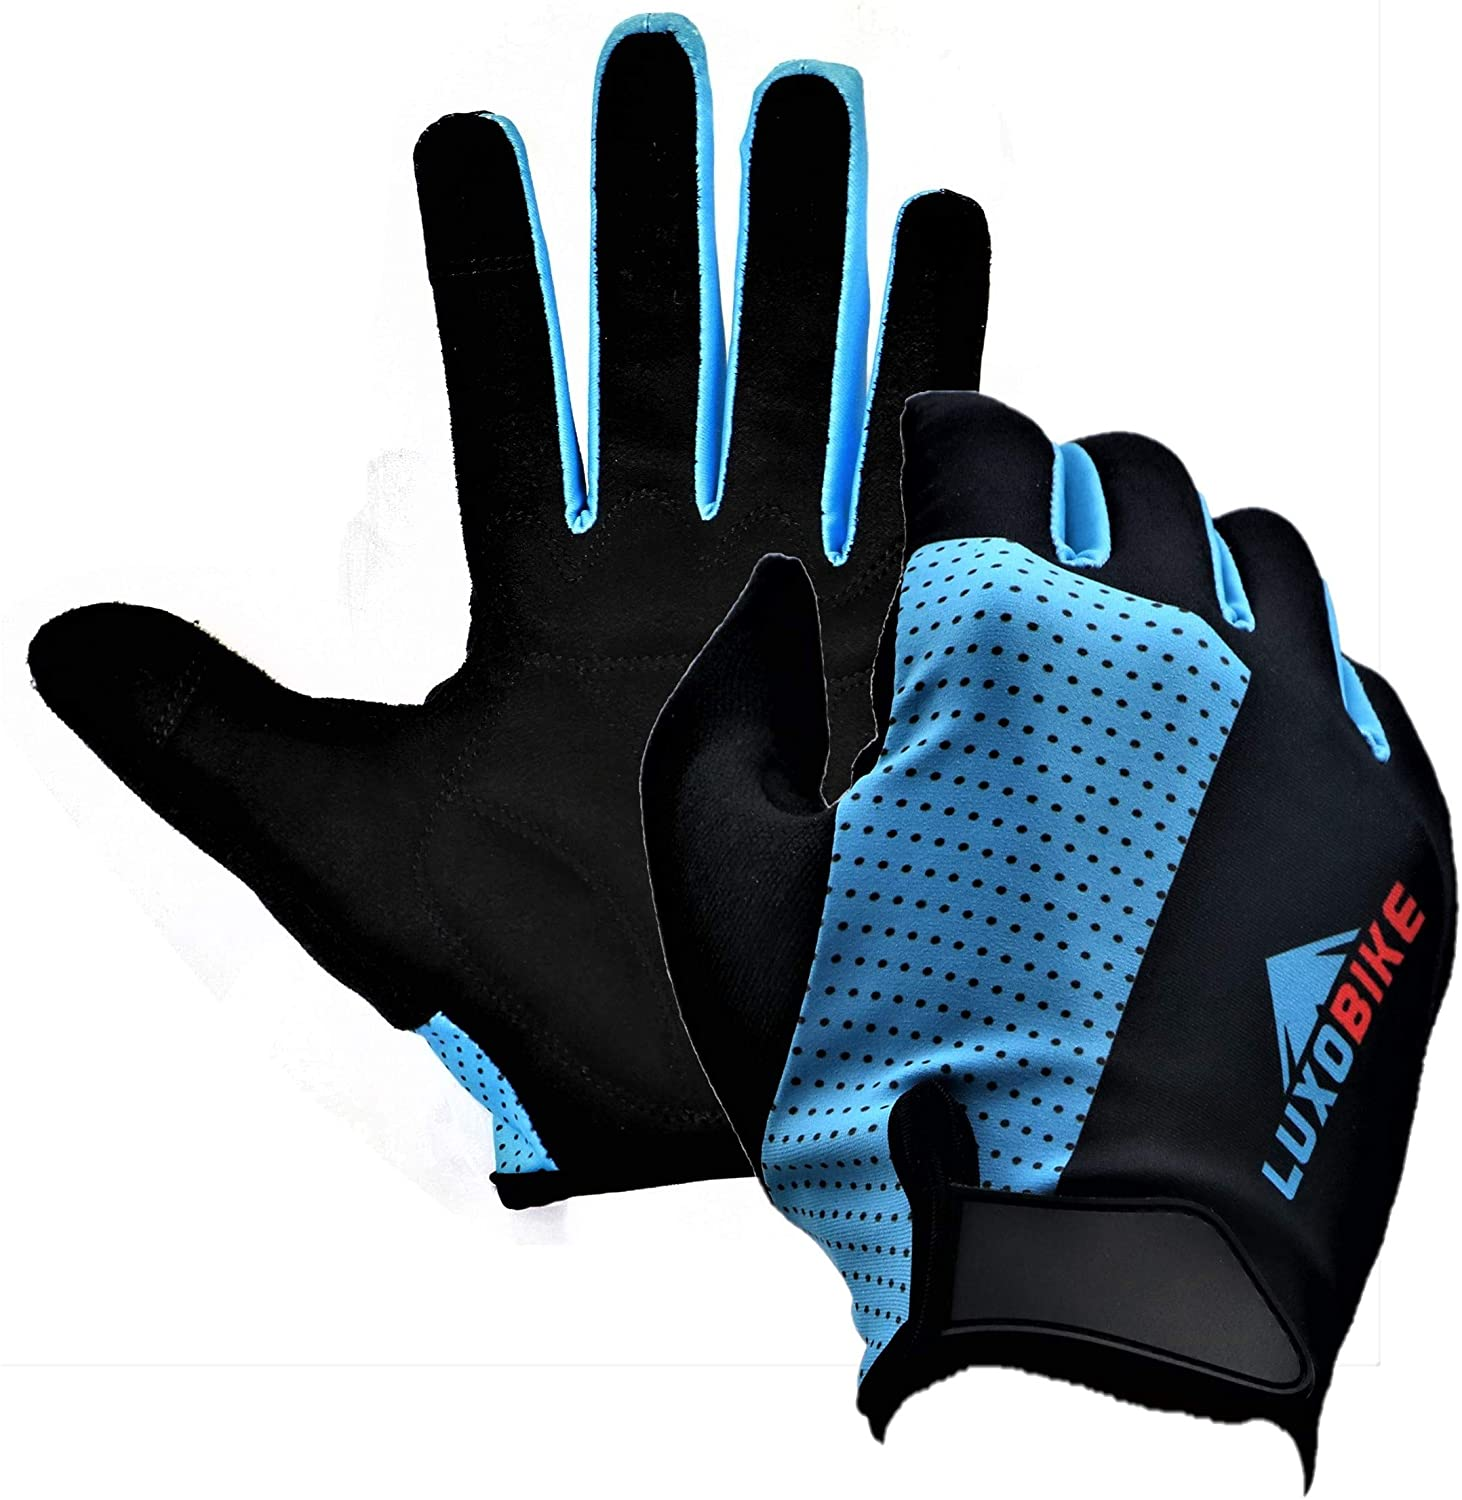 LuxoBike MTB Gloves Mountain Bike Gloves for Men Biking Gloves Women – Cycling Gloves with Antiskid Shock Absorbing Pad – Breathable Snug Fit – Touch Screen Road Bicycle BMX Dirt Bike